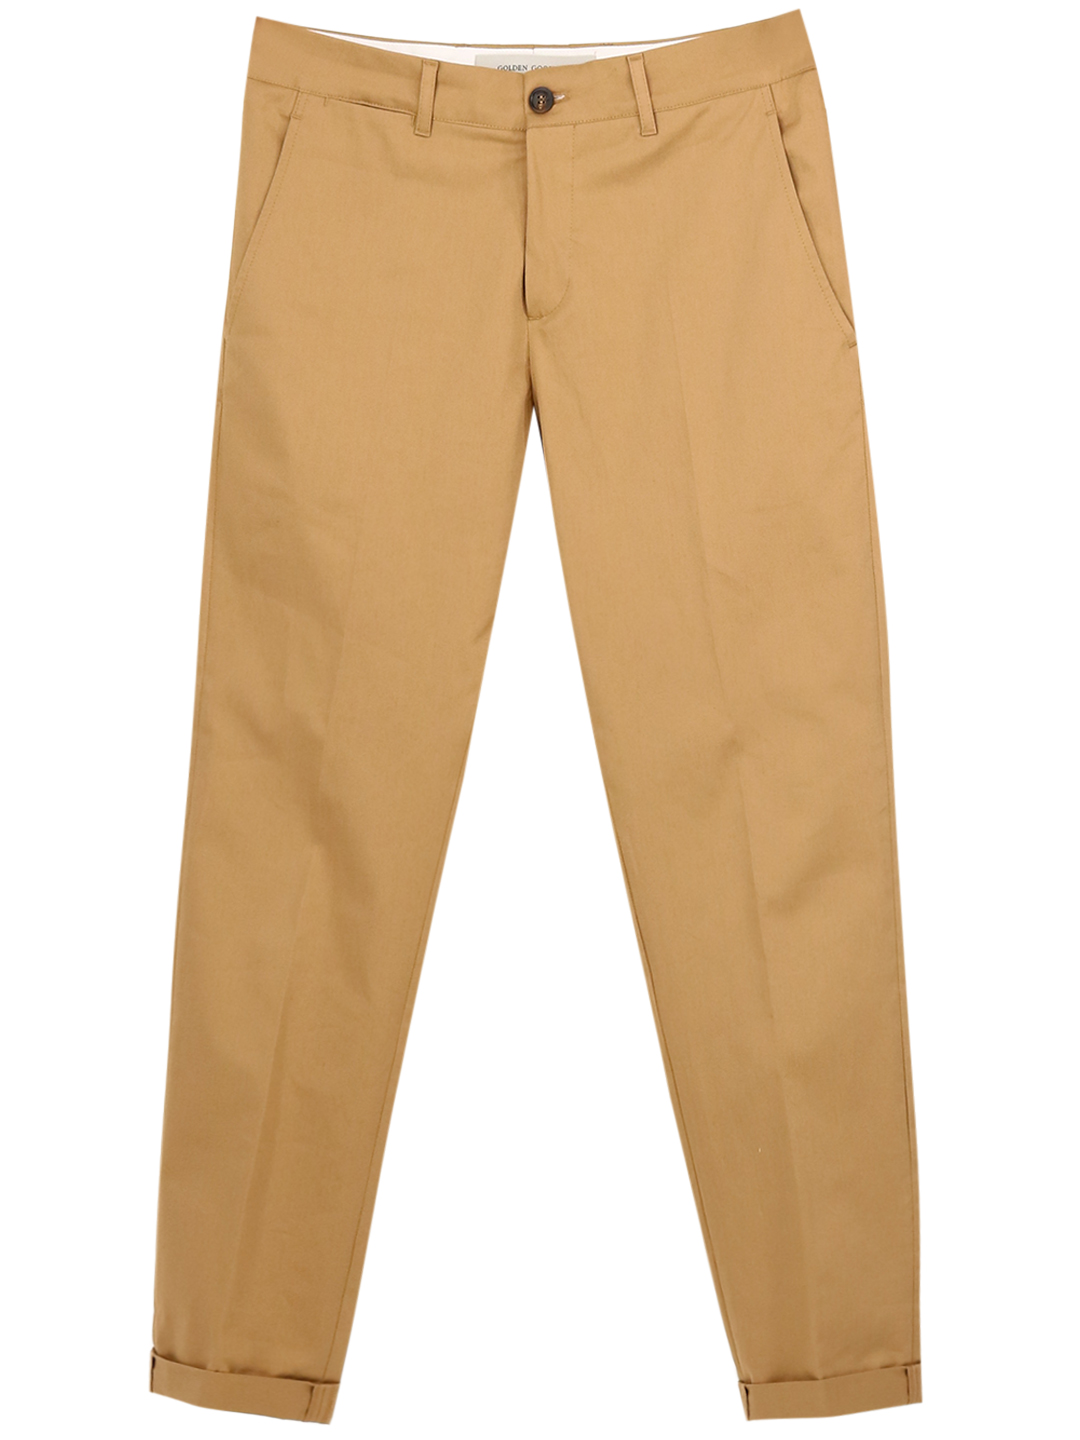 GOLDEN GOOSE CHINO TROUSERS BEIGE